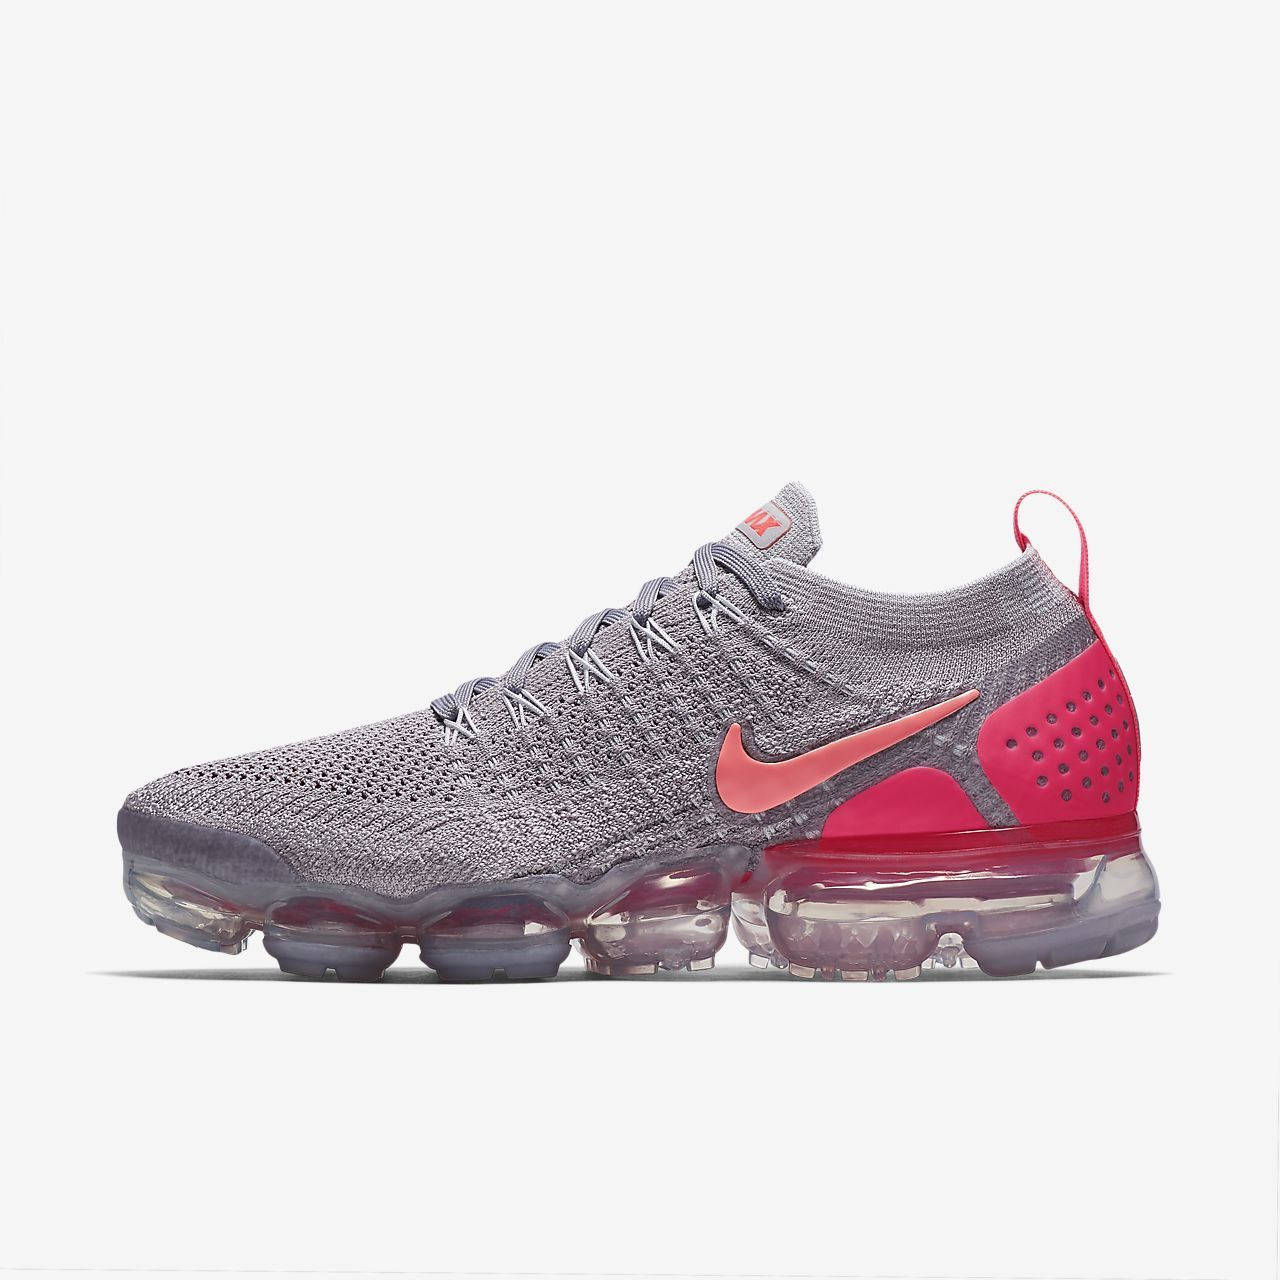 46026d9ca5ceff Nike Air Vapormax Flyknit Moc 2.0 Moon Particle